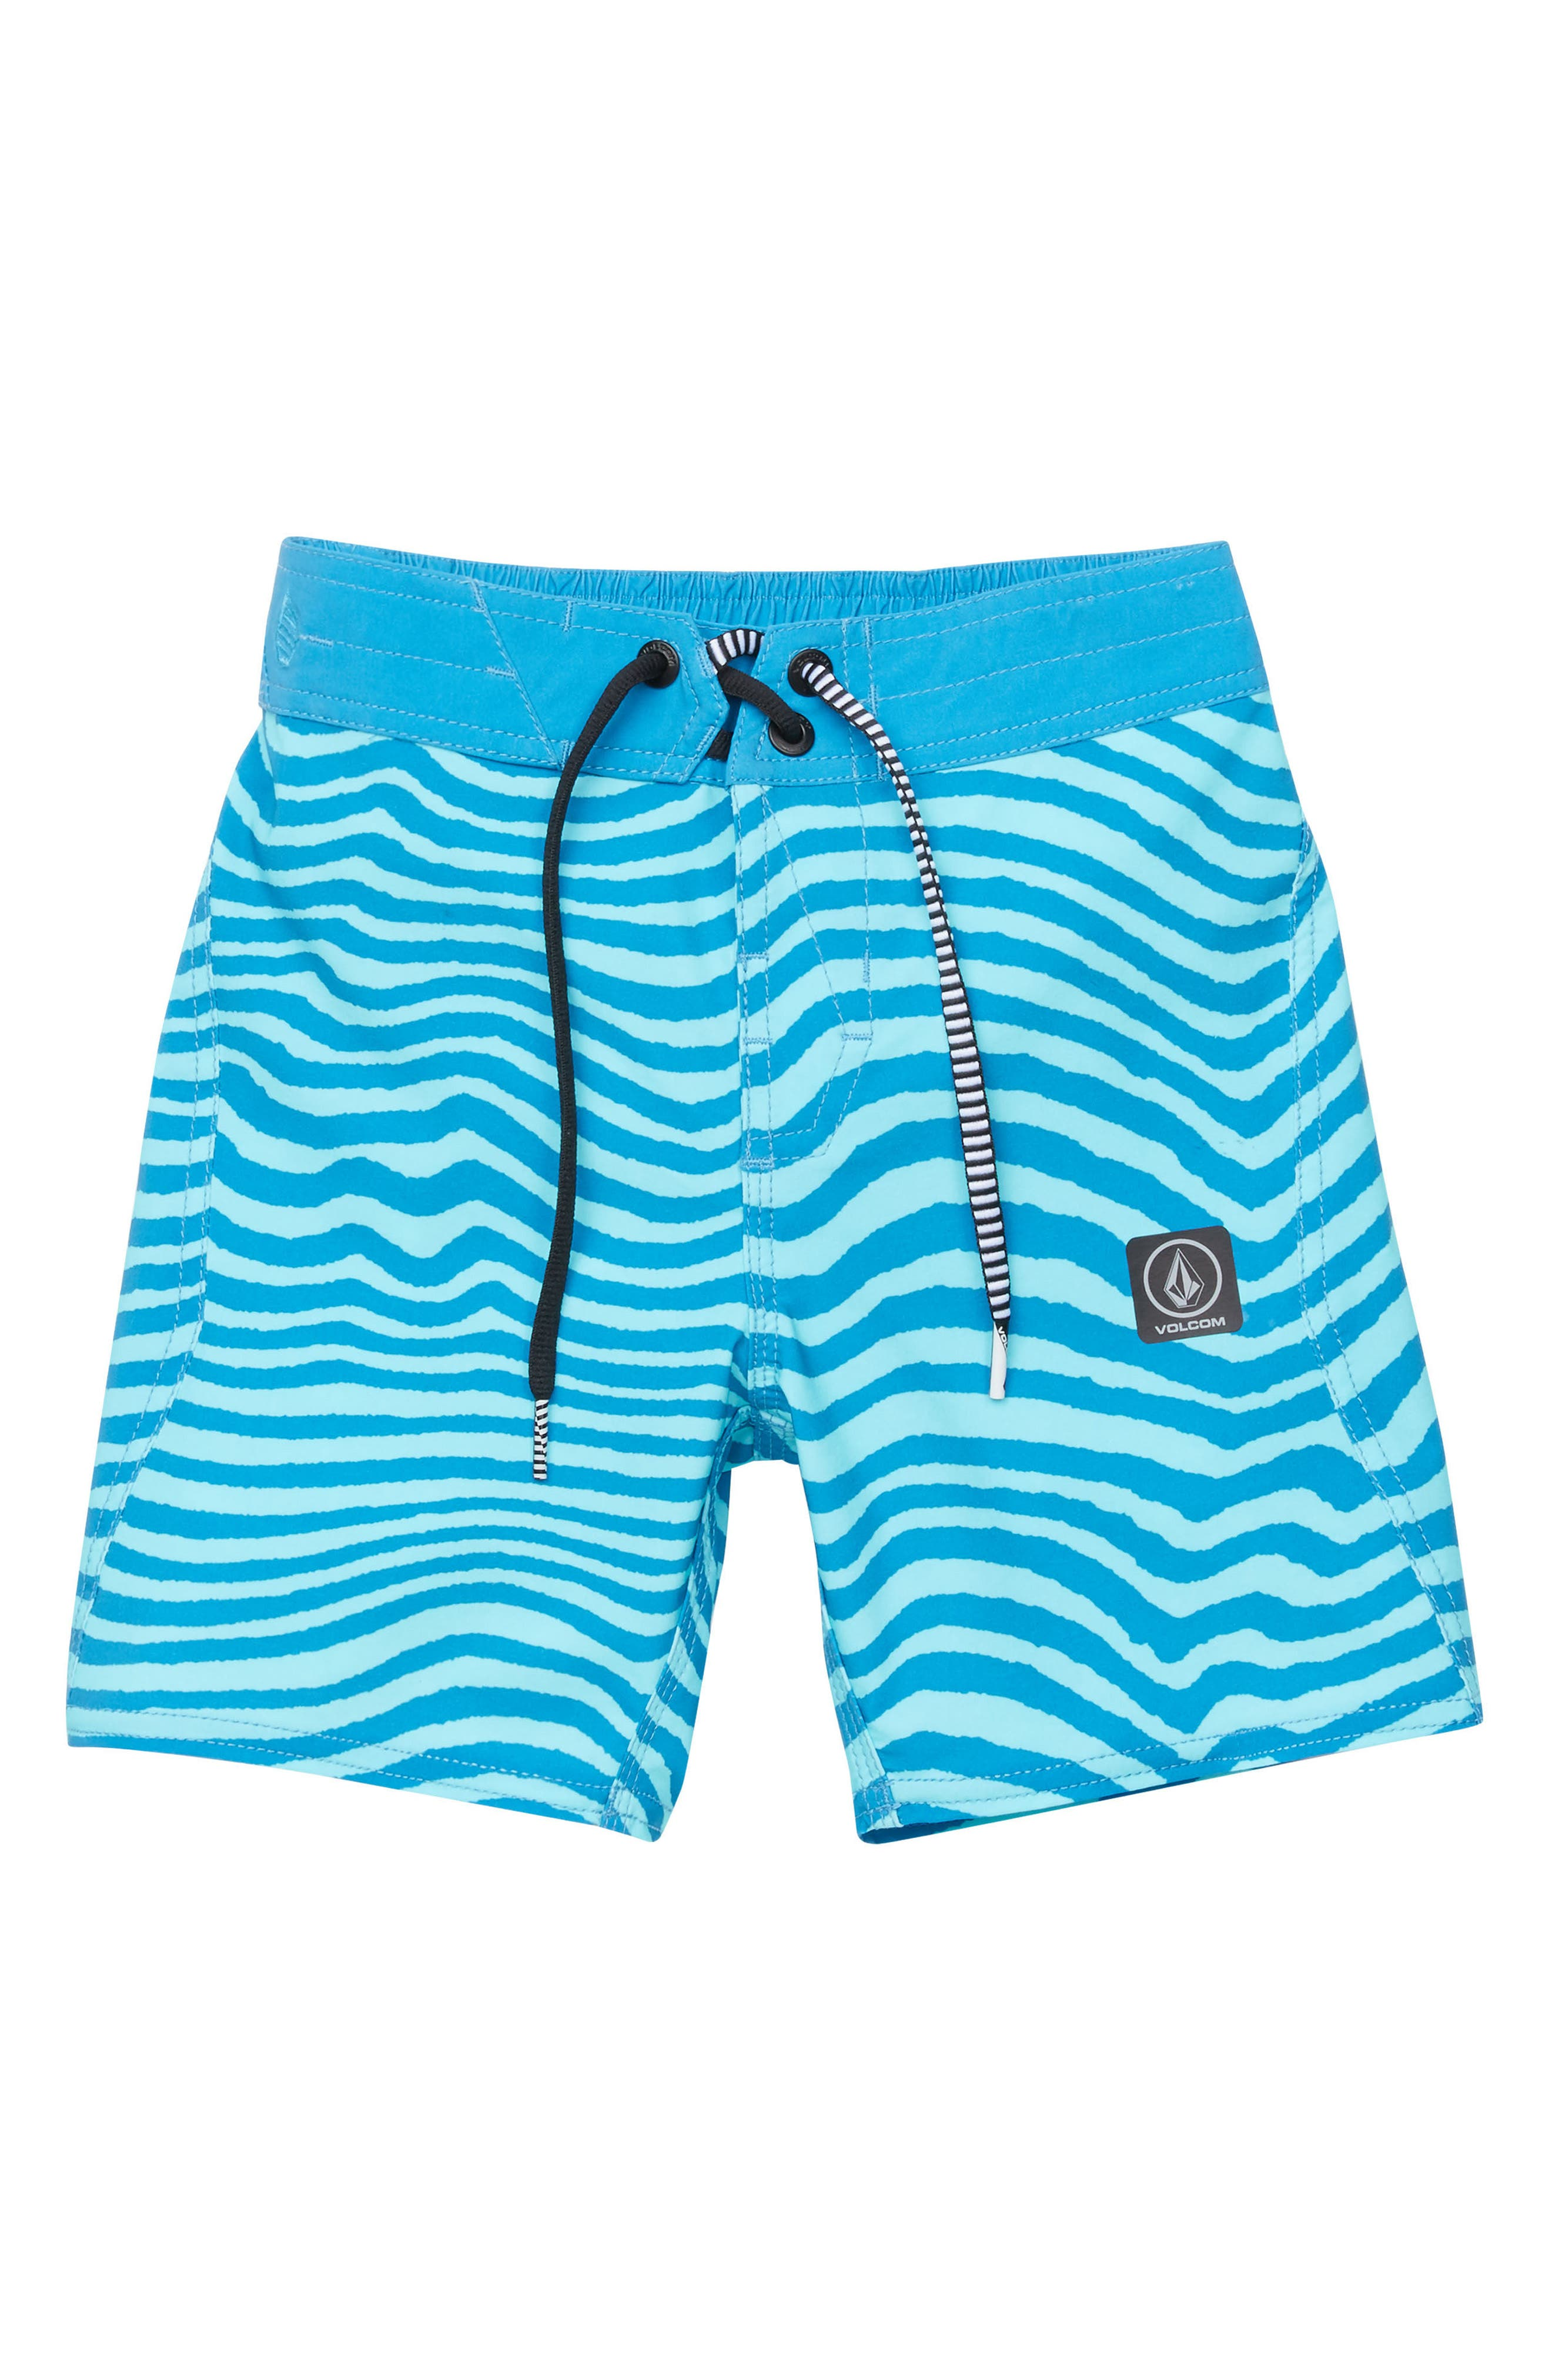 Mag Vibes Board Shorts,                         Main,                         color, 443